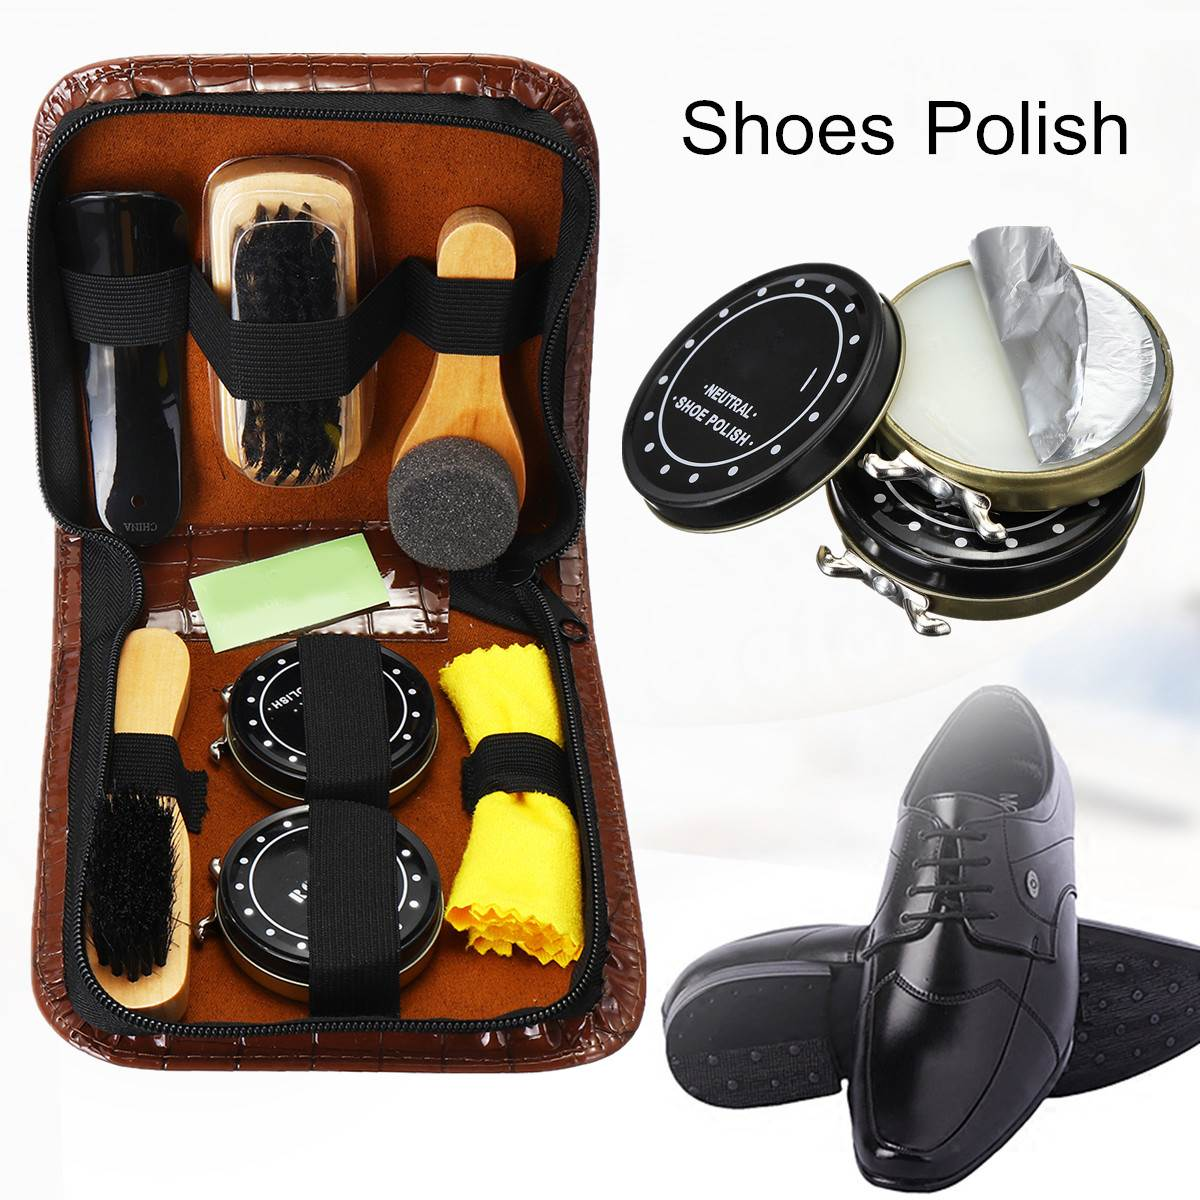 BSAID Shoe Polish Set 7 In 1 Portable Care Kit Shine Travel Case Clean Brush Polishing For Leather Shoes From